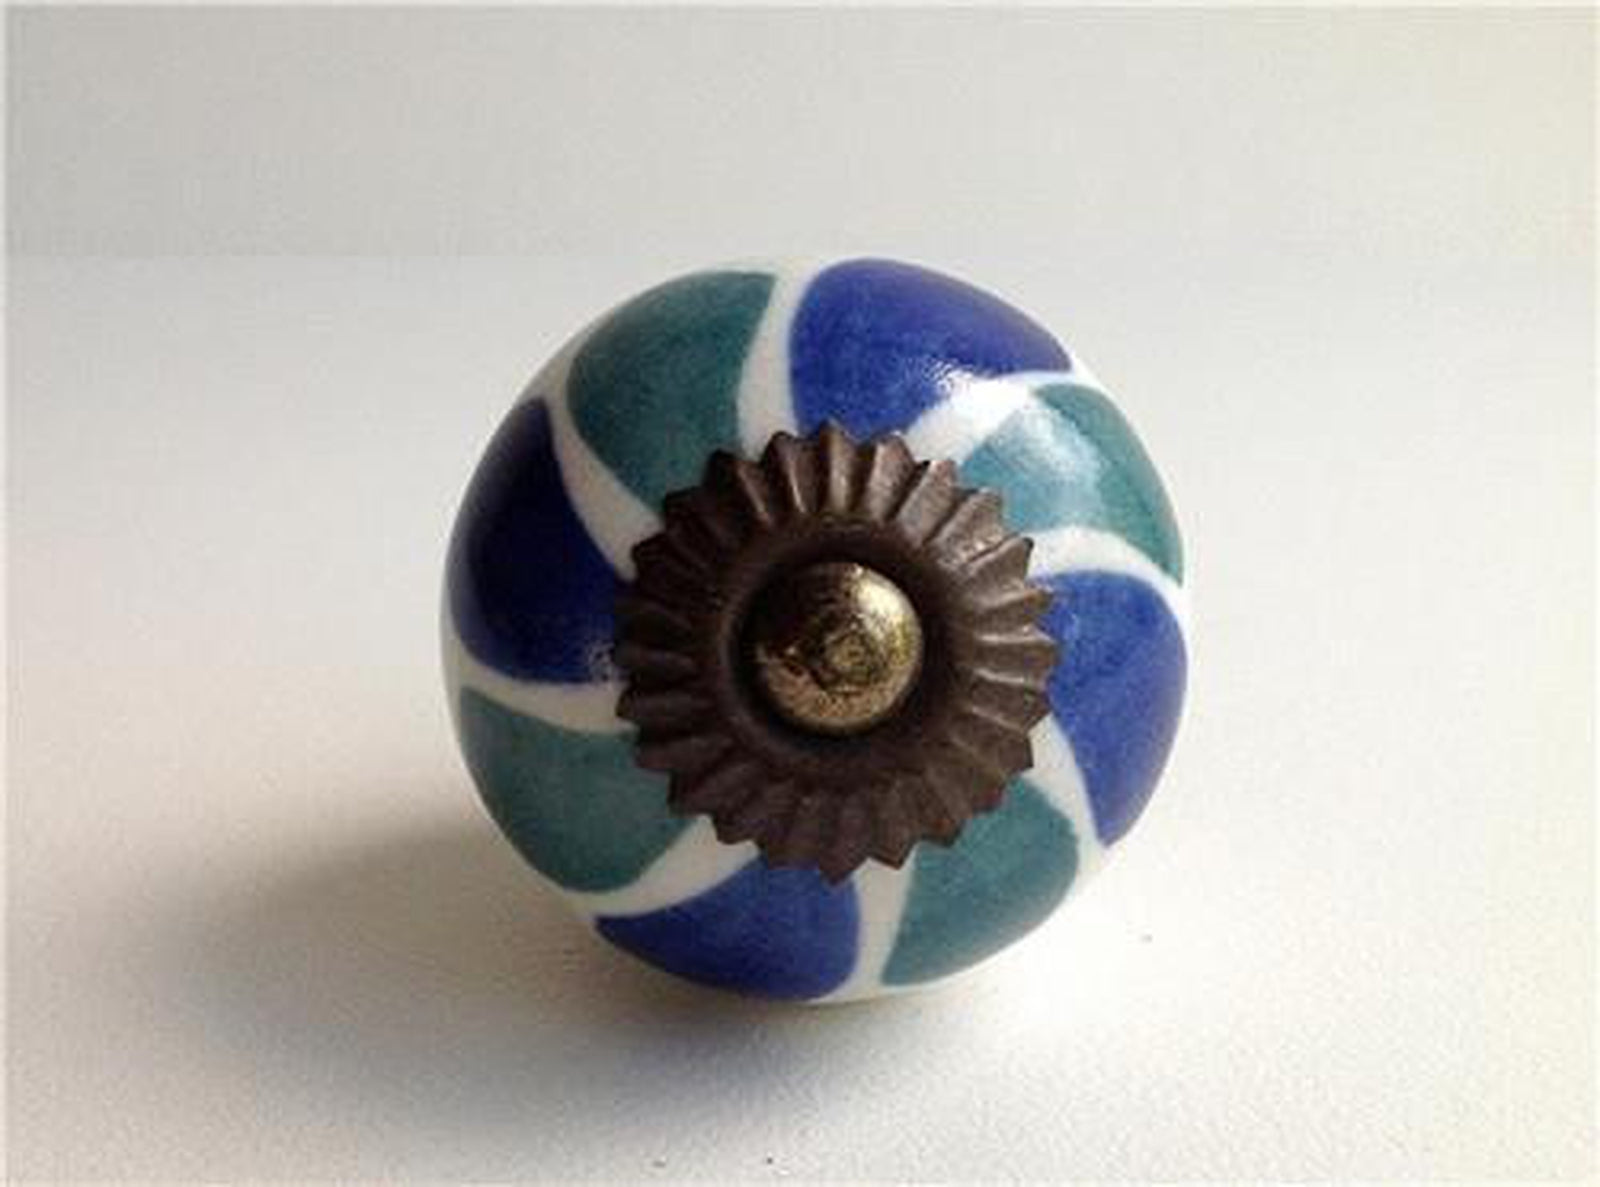 Teal And Blue Green On White Porcelain Cabinet Knobs Or